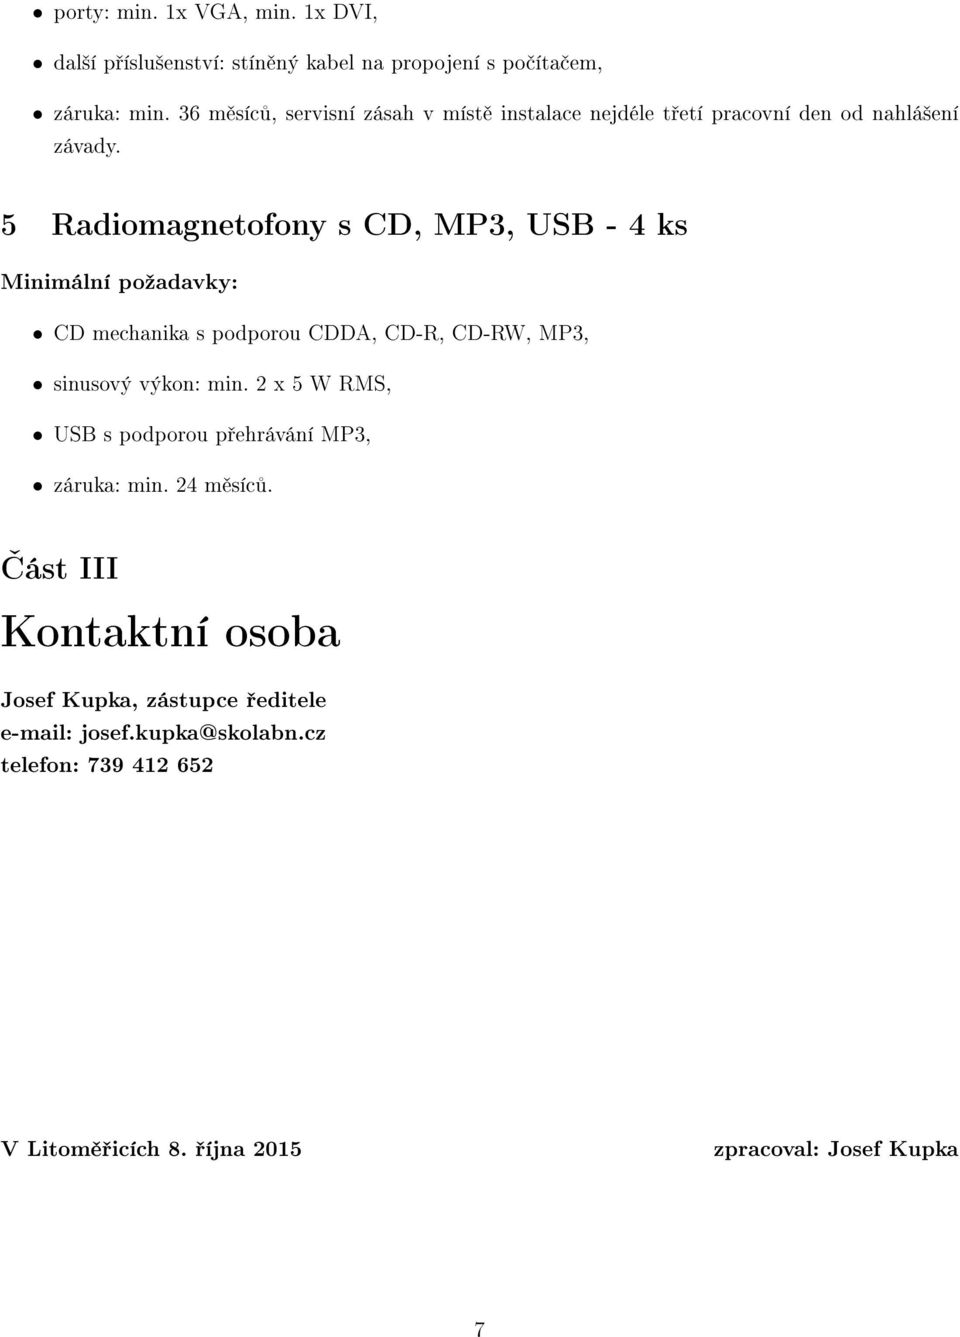 5 Radiomagnetofony s CD, MP3, USB - 4 ks CD mechanika s podporou CDDA, CD-R, CD-RW, MP3, sinusový výkon: min.